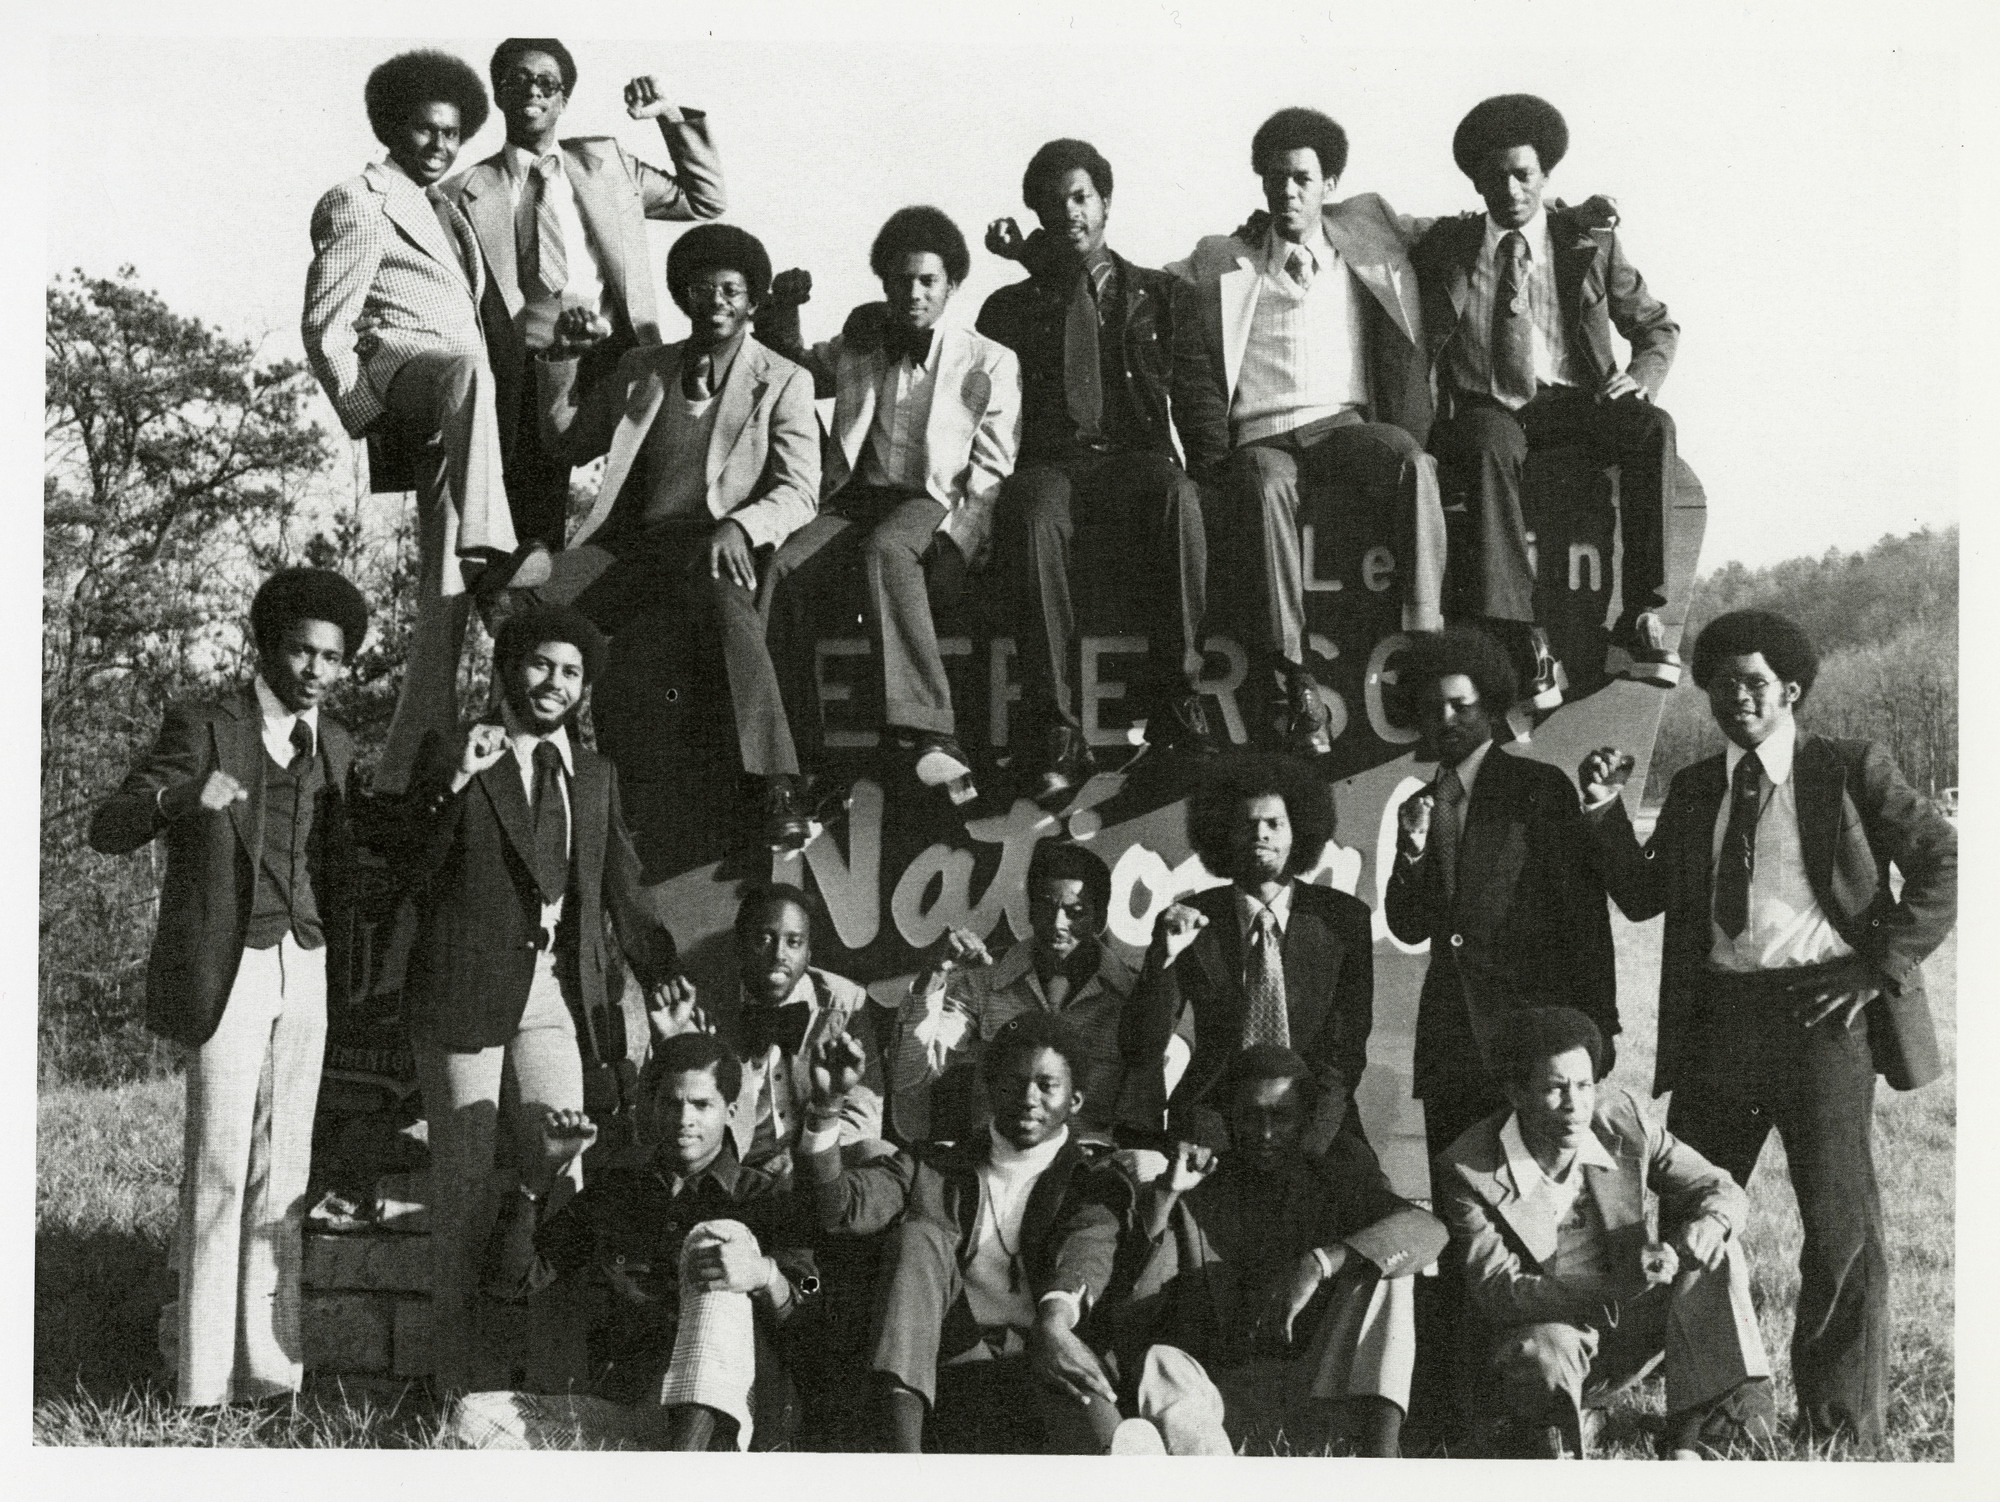 http://spec.lib.vt.edu/pickup/Omeka_upload/AlphaPhiAlpha_1975_JeffersonNationalPark.jpg